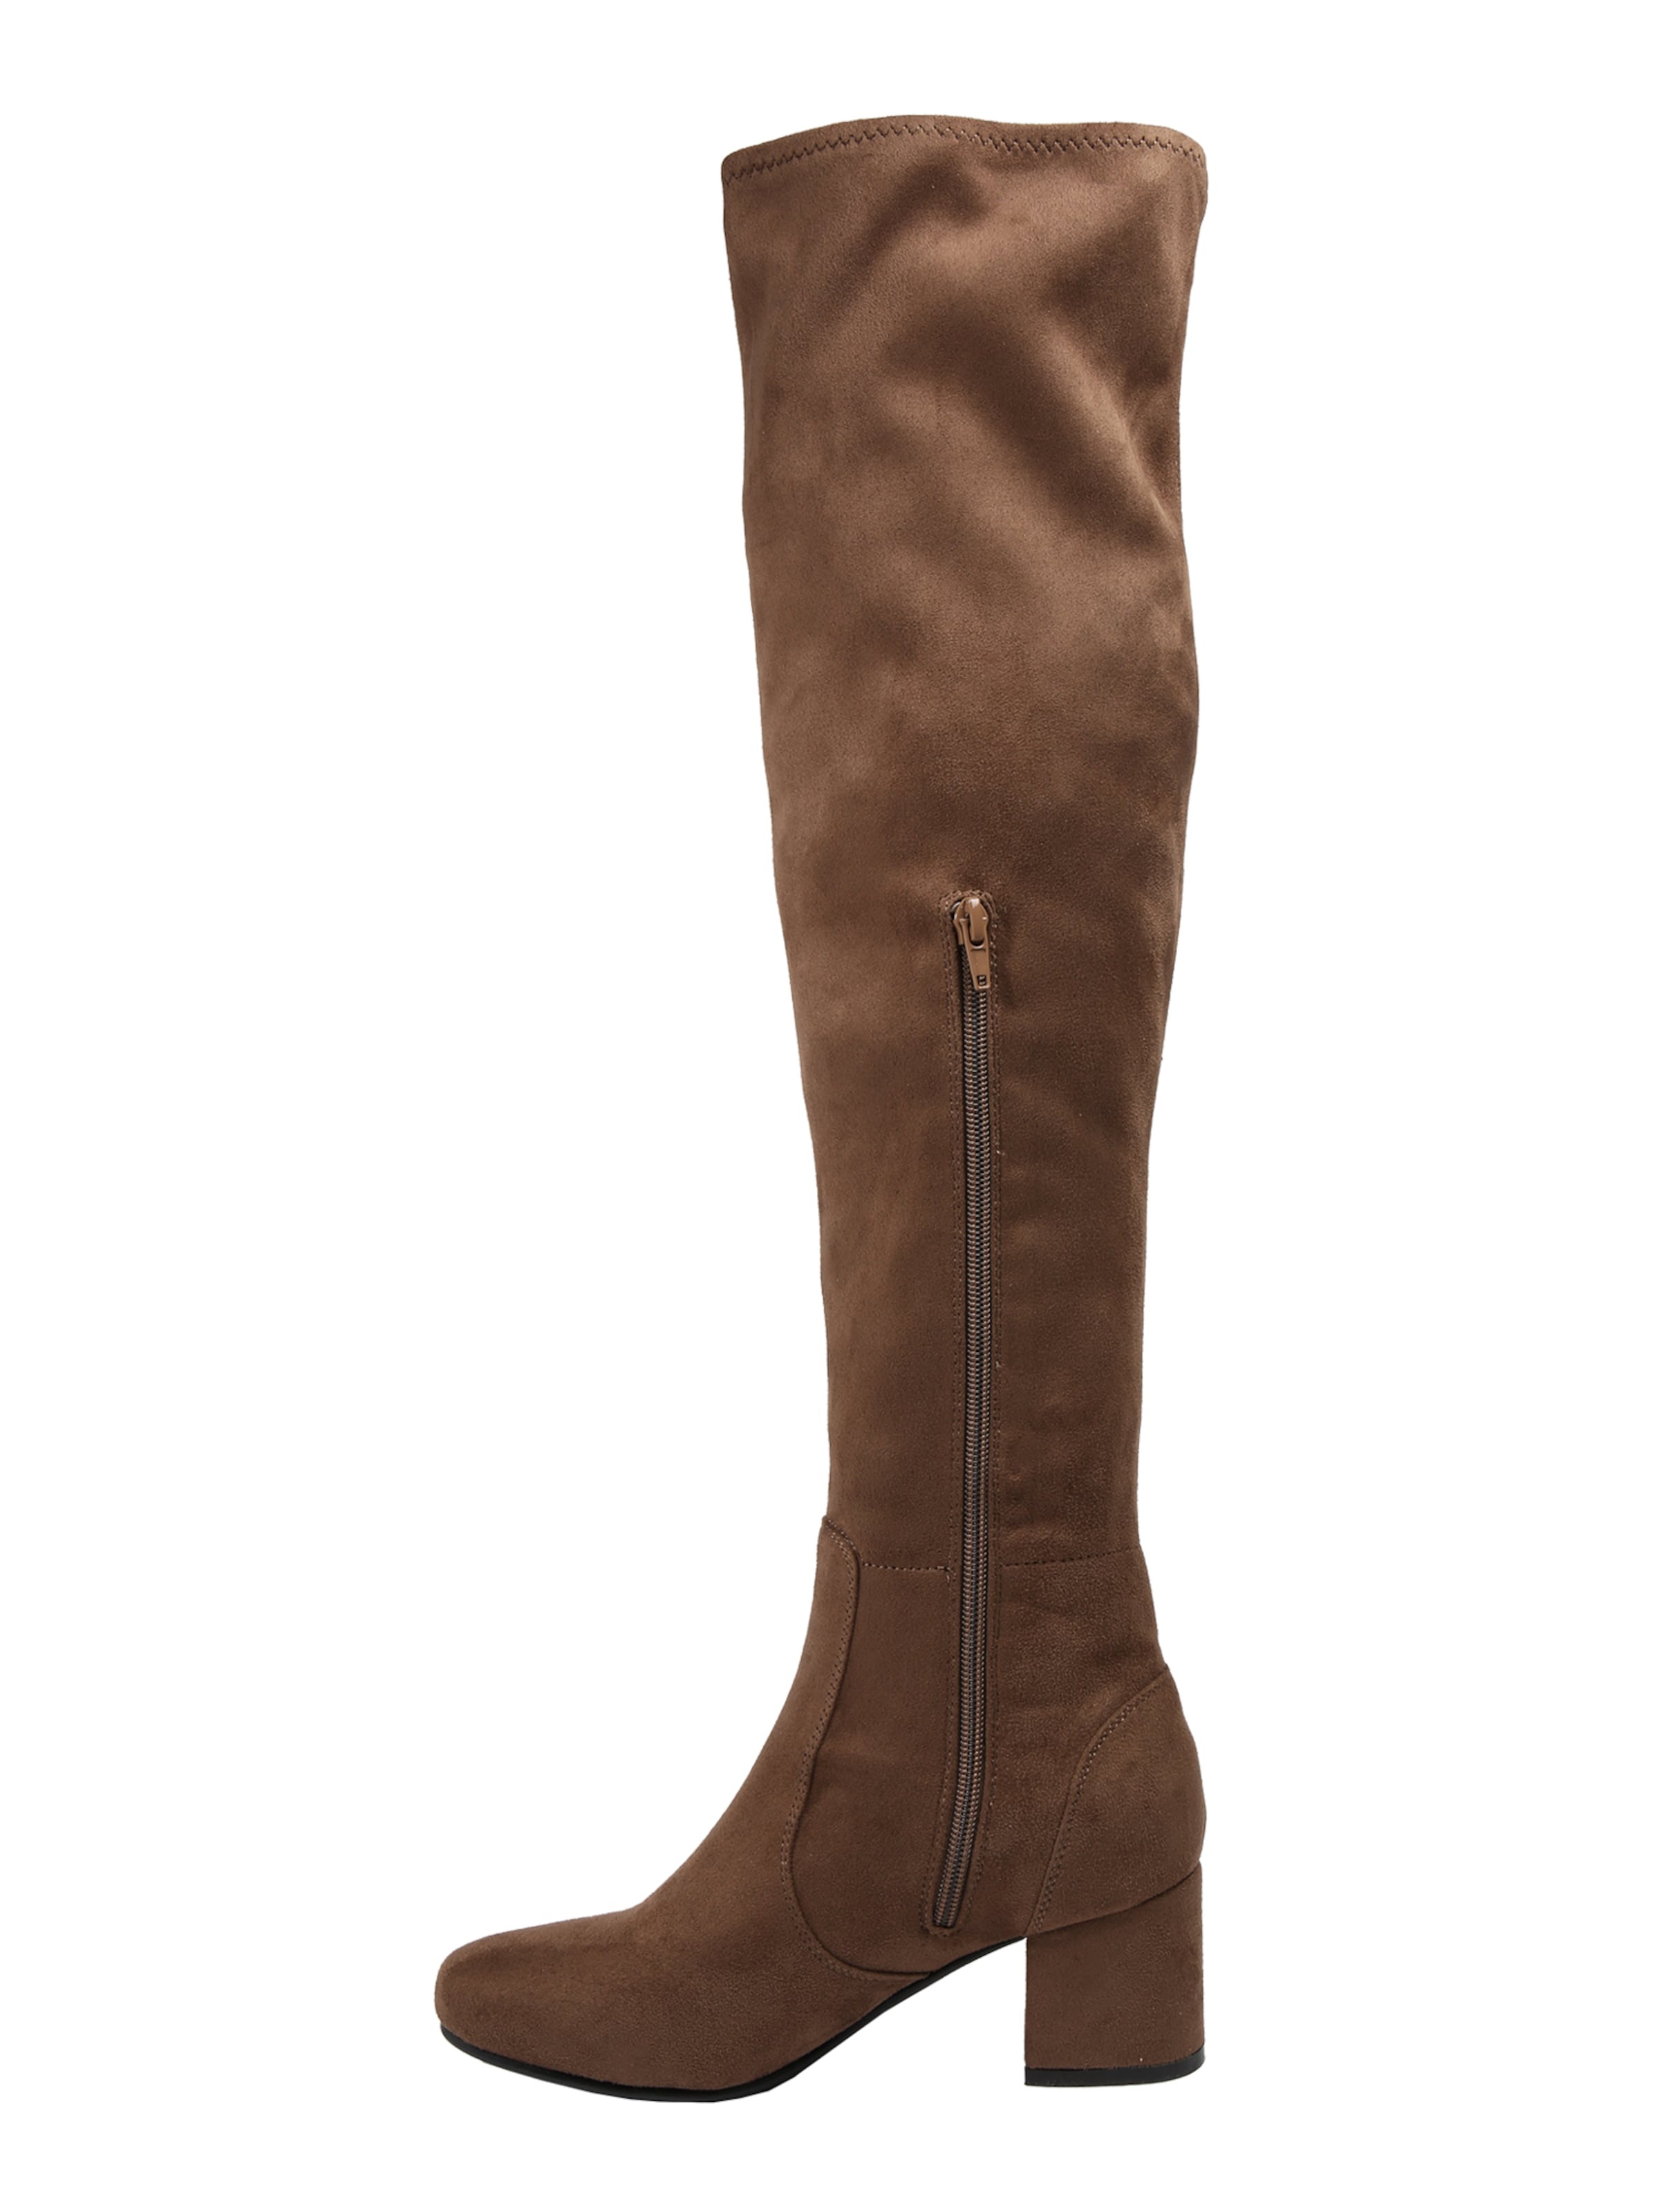 About stiefel Taupe 'asya' In You Overknee nPkOw0